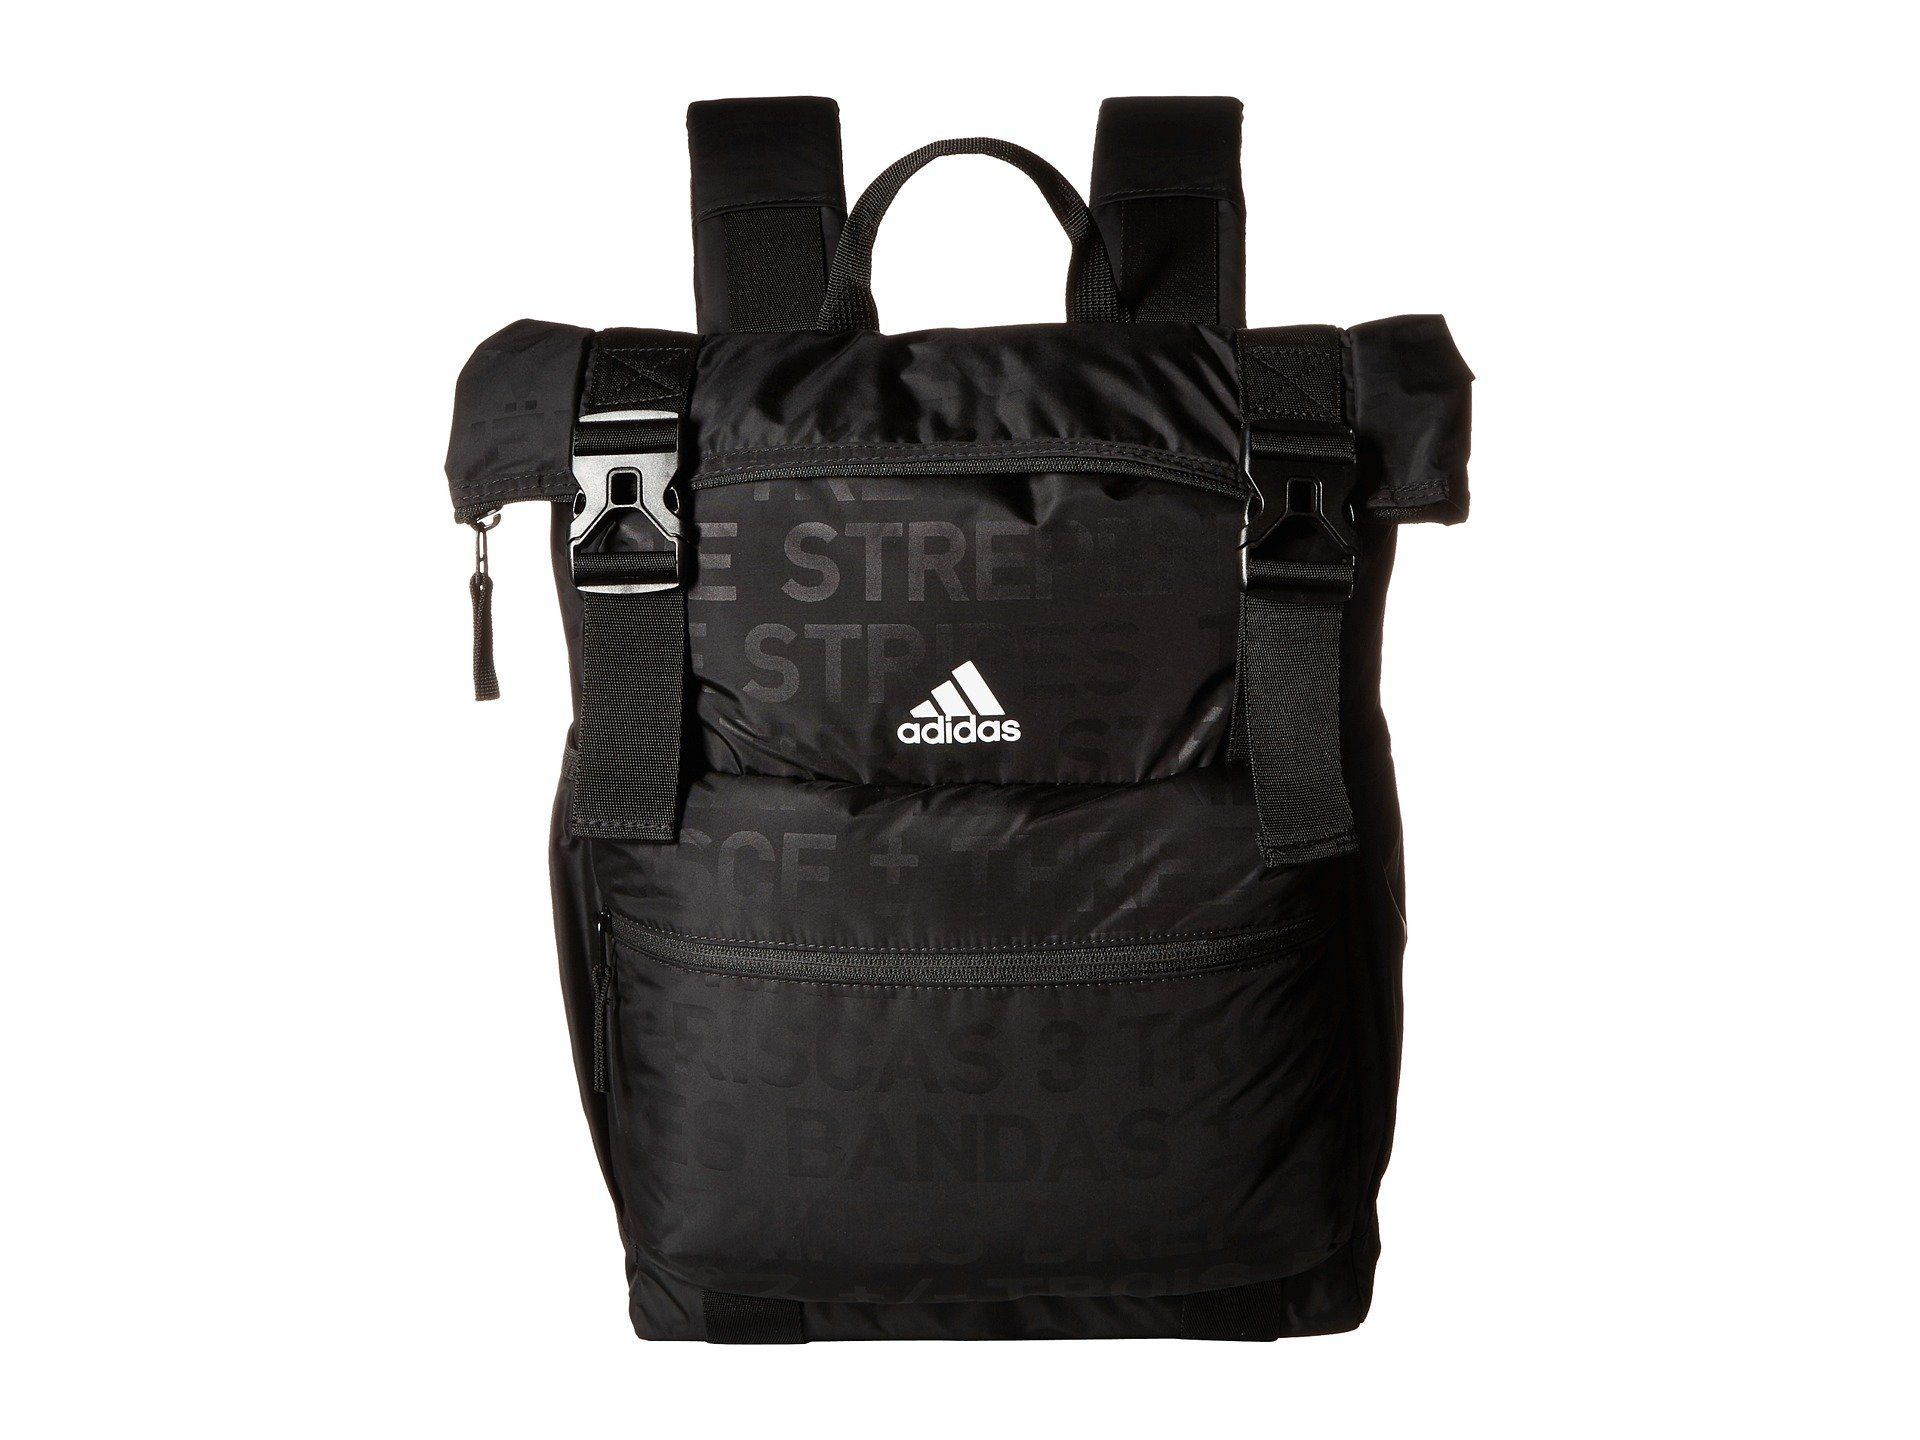 Buy Adidas Adidas Yola Backpack in Egypt 6c90d177315d1